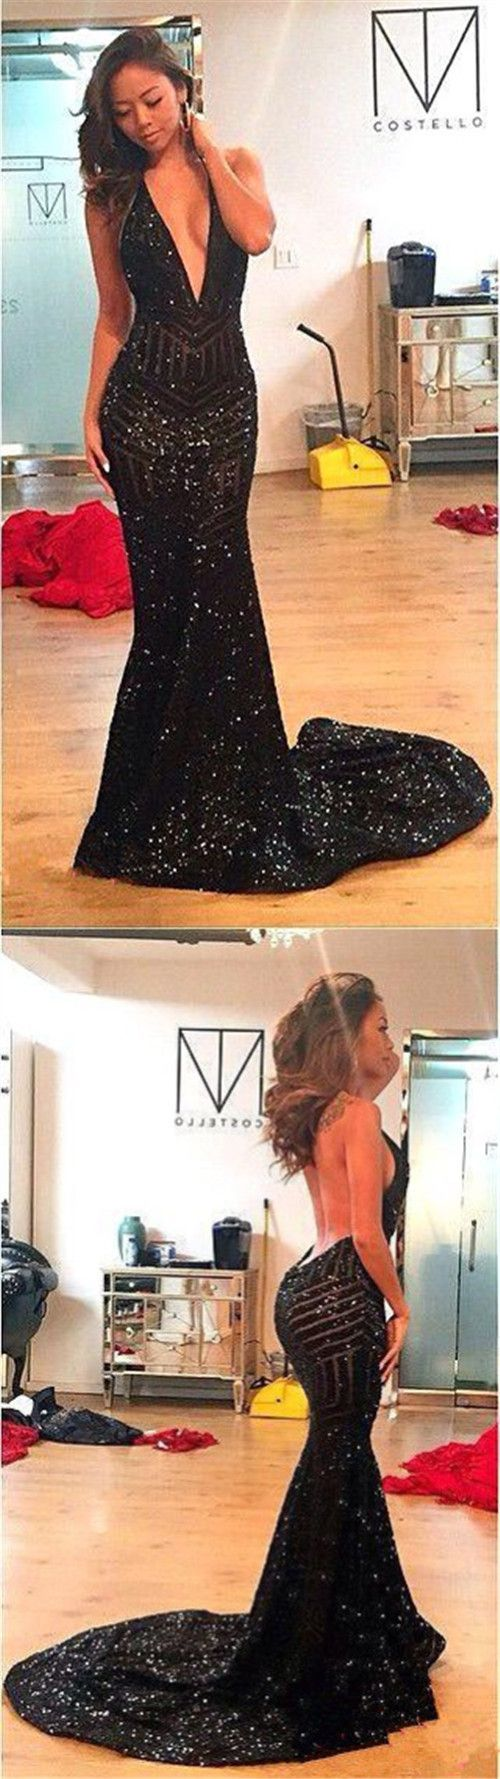 Black sequined prom dressessparkle prom dressessexy prom dresses